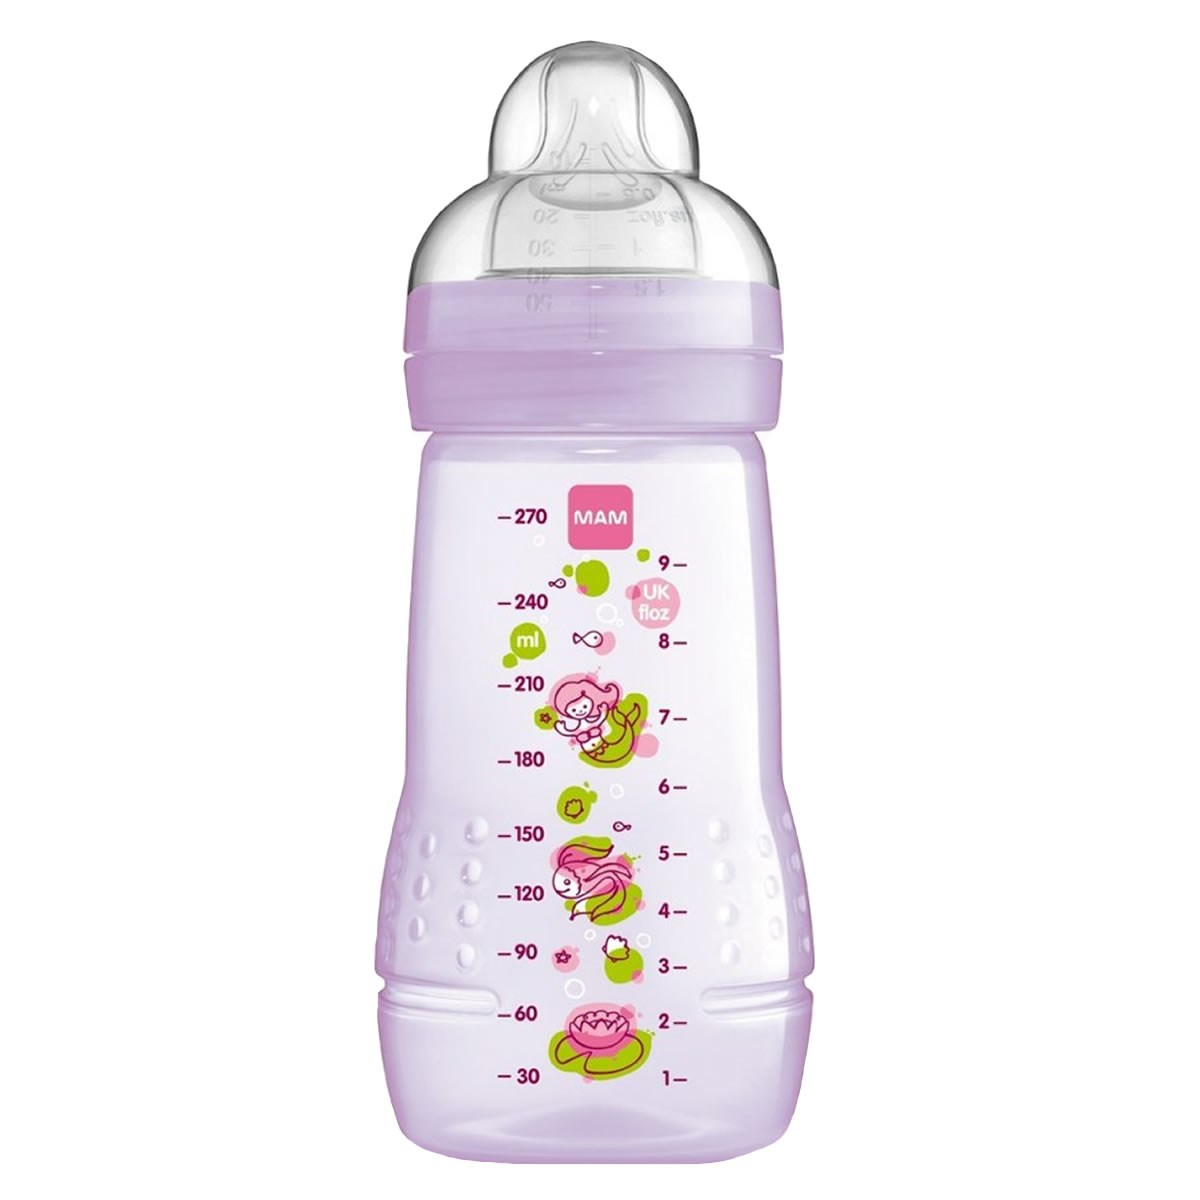 MAM Baby Bottle 270ml - Assorted Colours